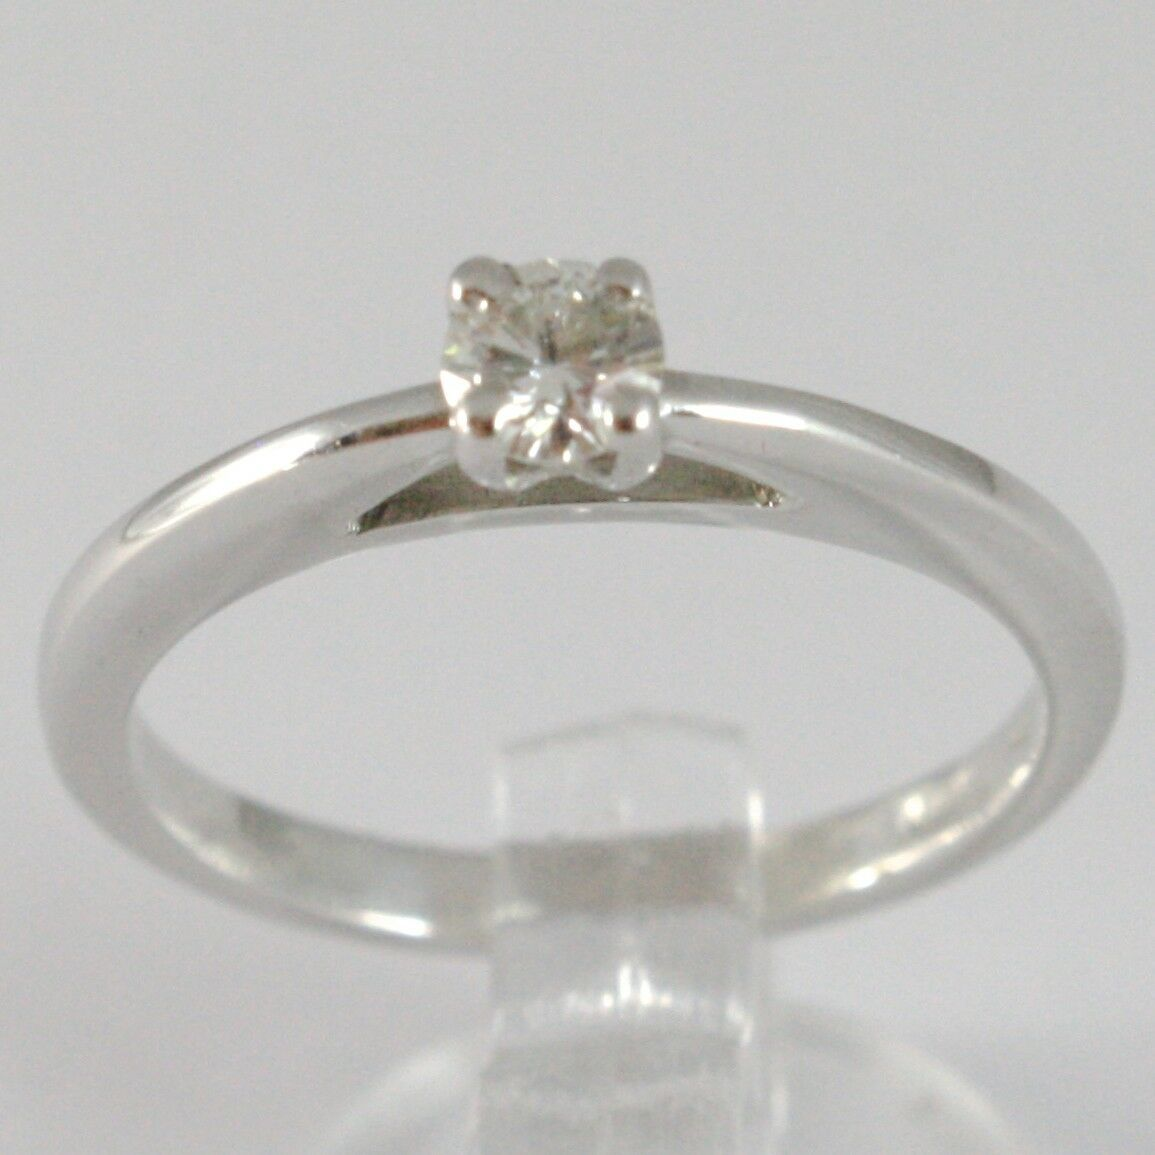 White Gold Ring 750 18K, Solitaire, Bezel Raised, Diamond Carat 0.20